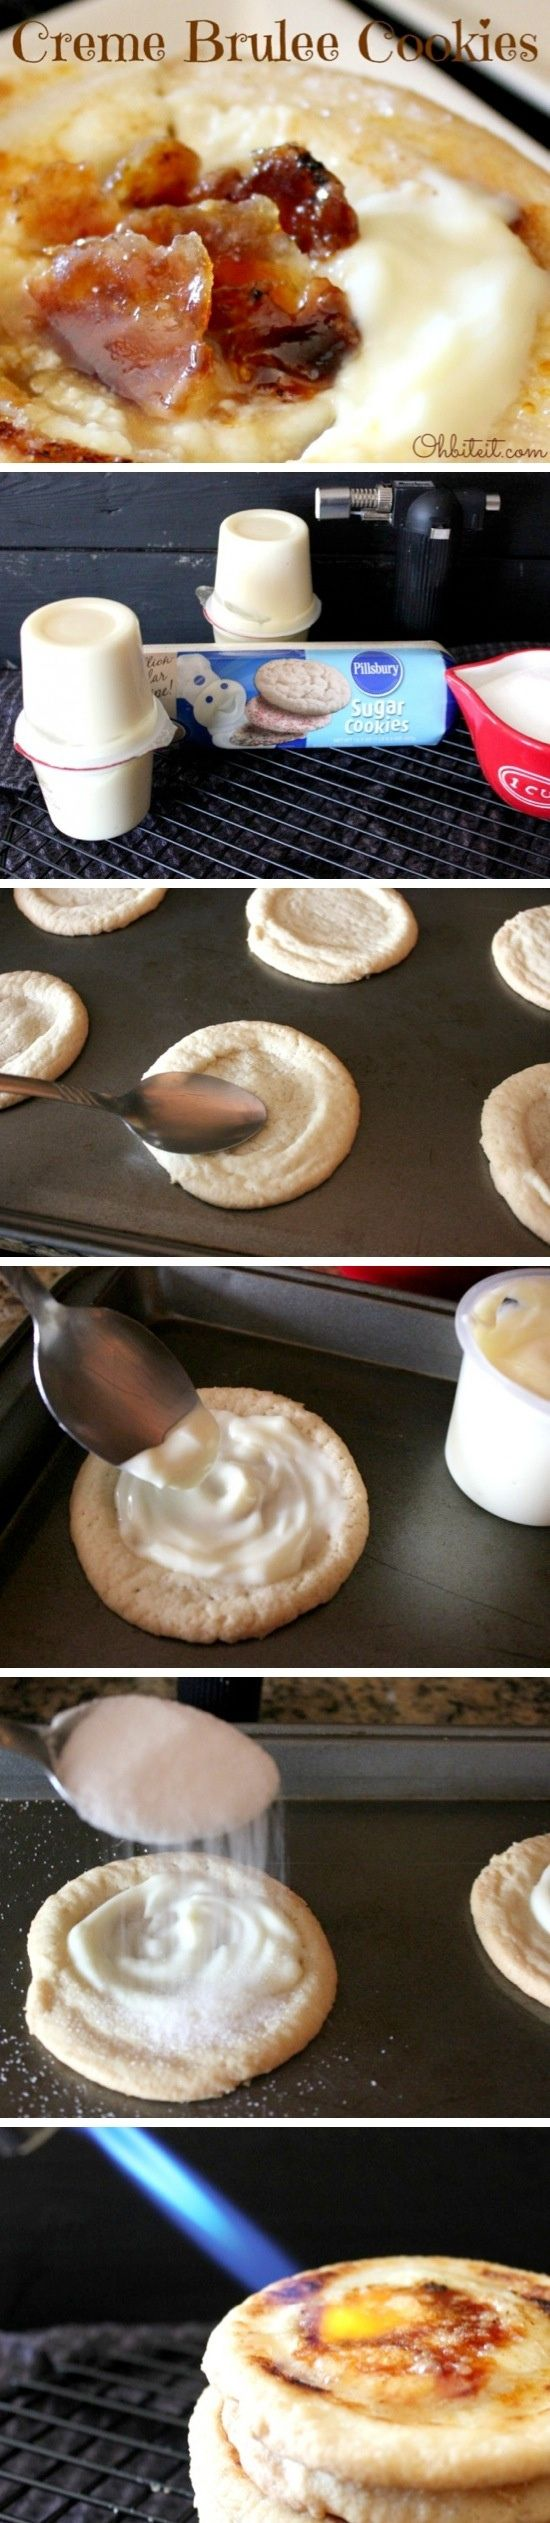 Creme Brulee Cookies! I need one of those flame things STAT!!!